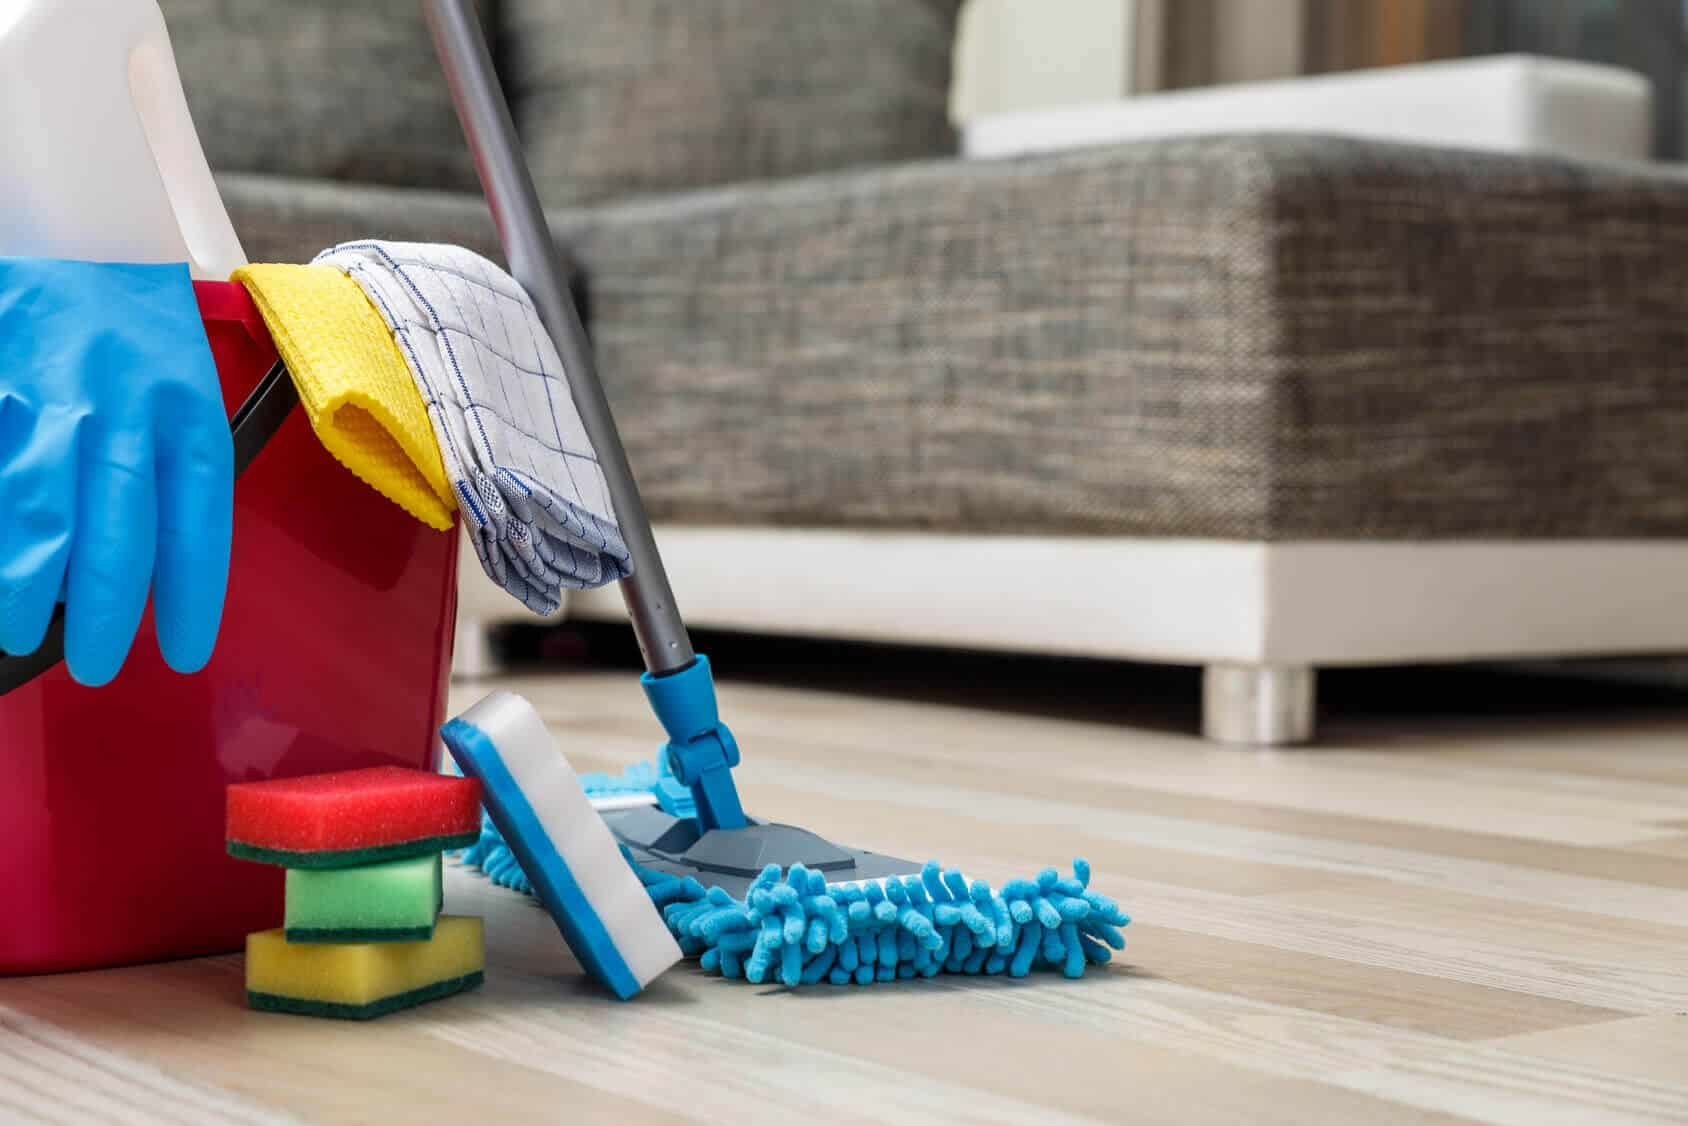 Finest Cleaning Services Of Professional Cleaning Firms